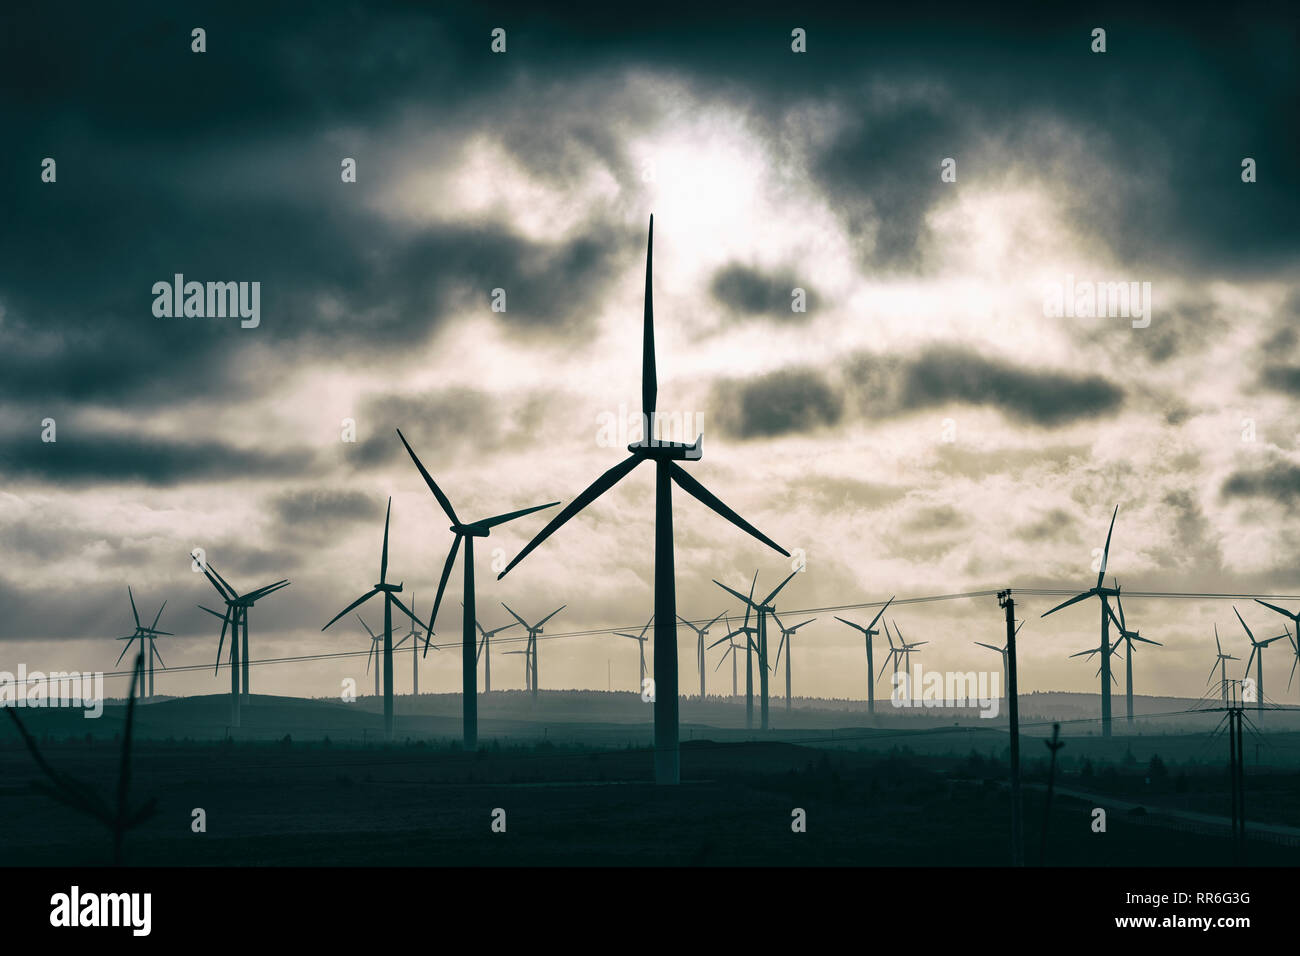 View of wind turbines at sunset at Blacklaw Wind Farm in Scotland, UK - Stock Image